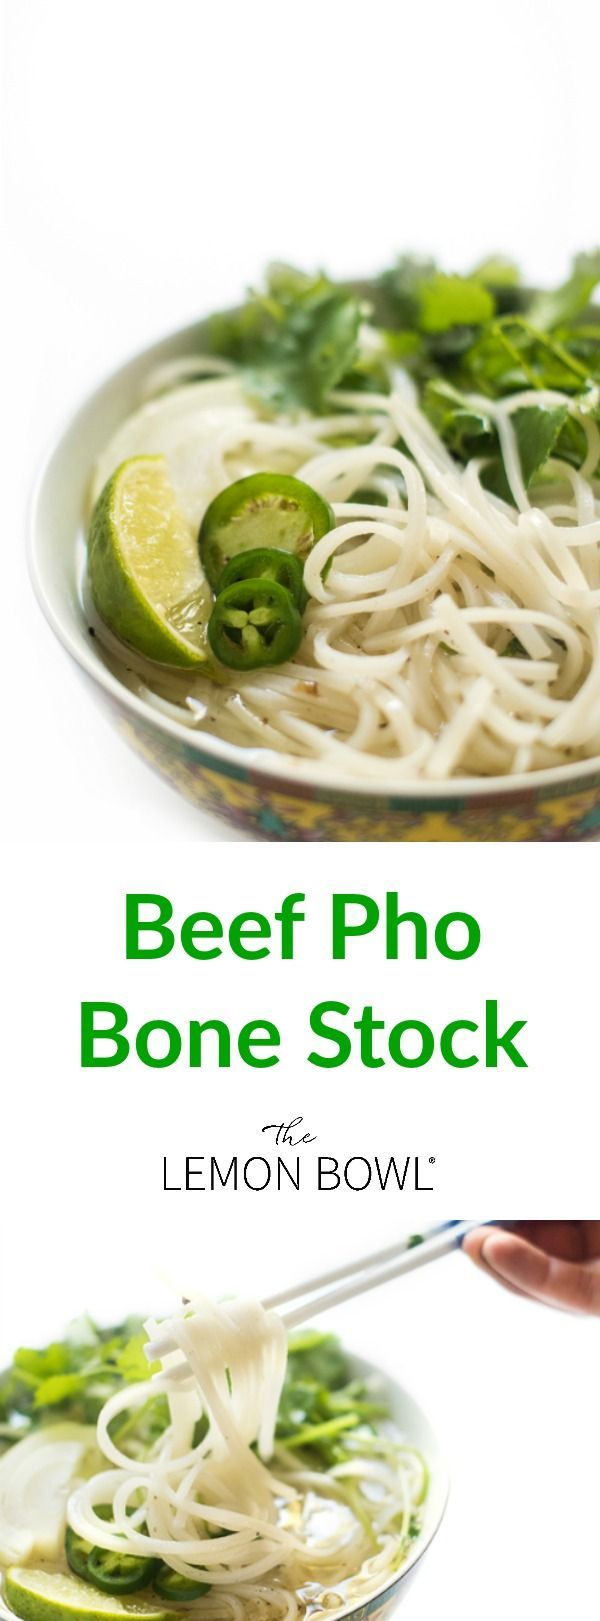 This rich and aromatic beef pho bone stock, made in partnership with Nature's Intent Organic Apple Cider Vinegar, is made with warm spices including cinnamon, cloves and coriander.